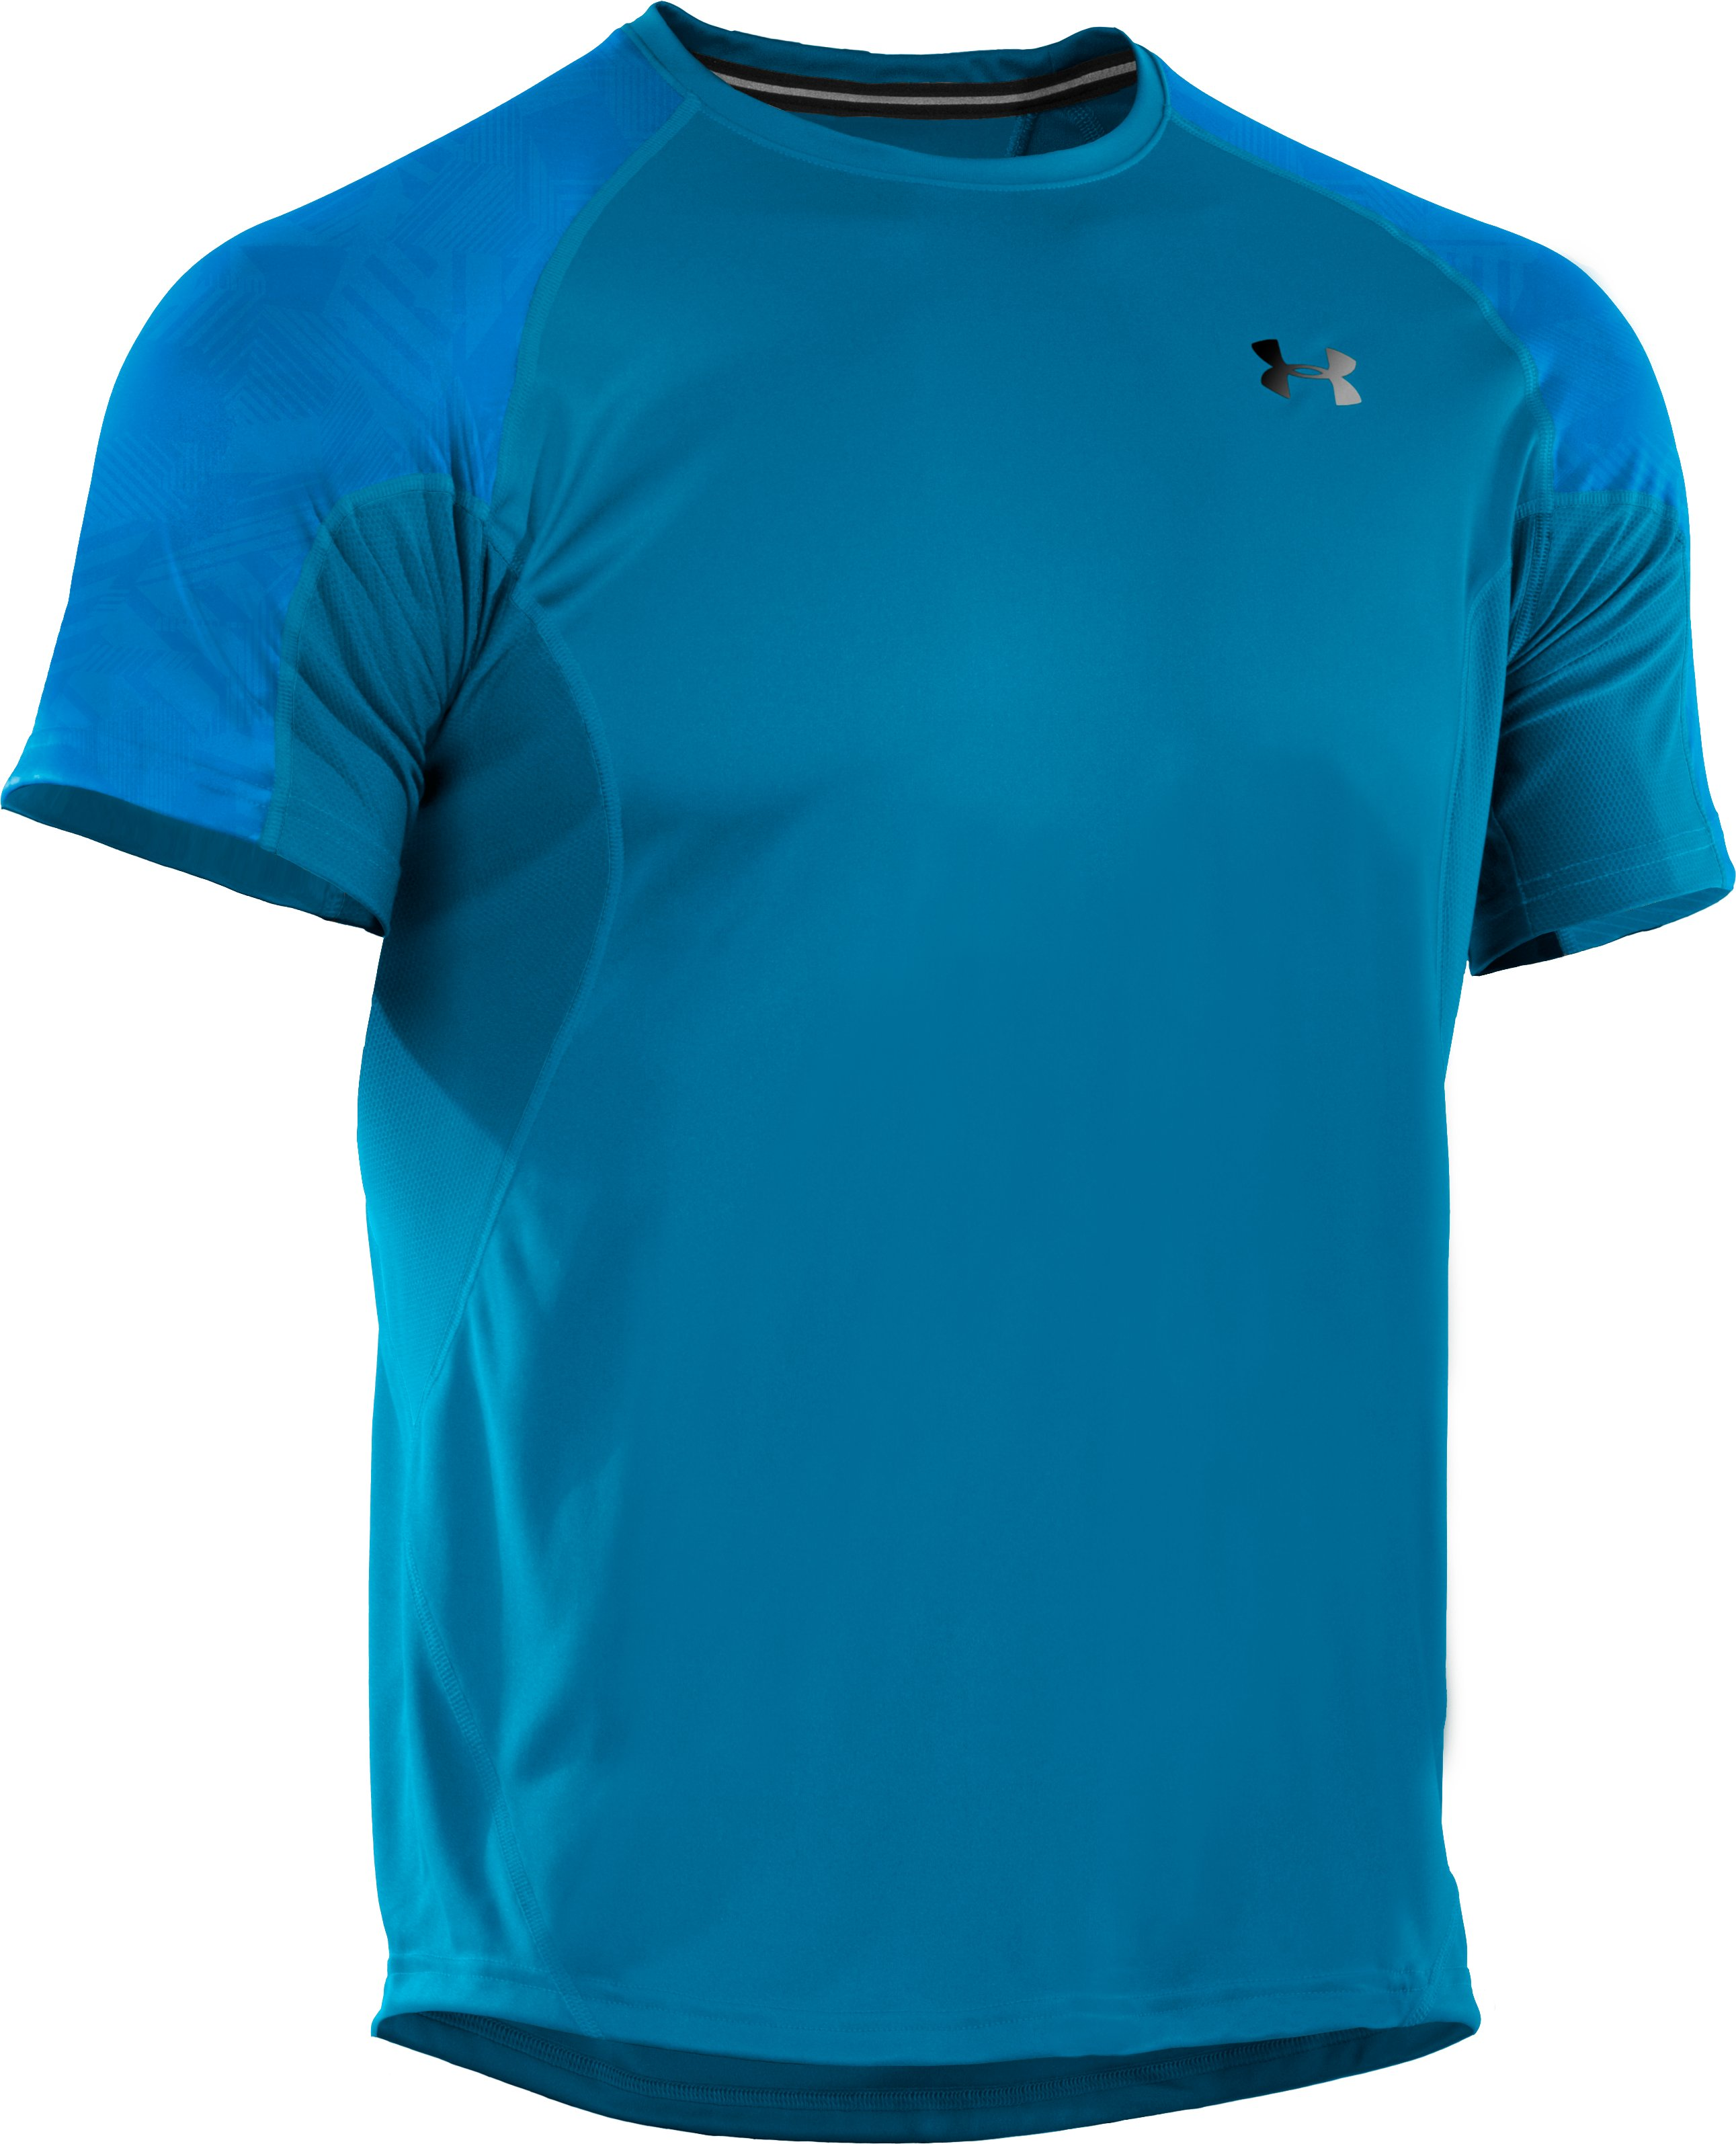 Men's coldblack® Engage Run T-Shirt, SNORKEL